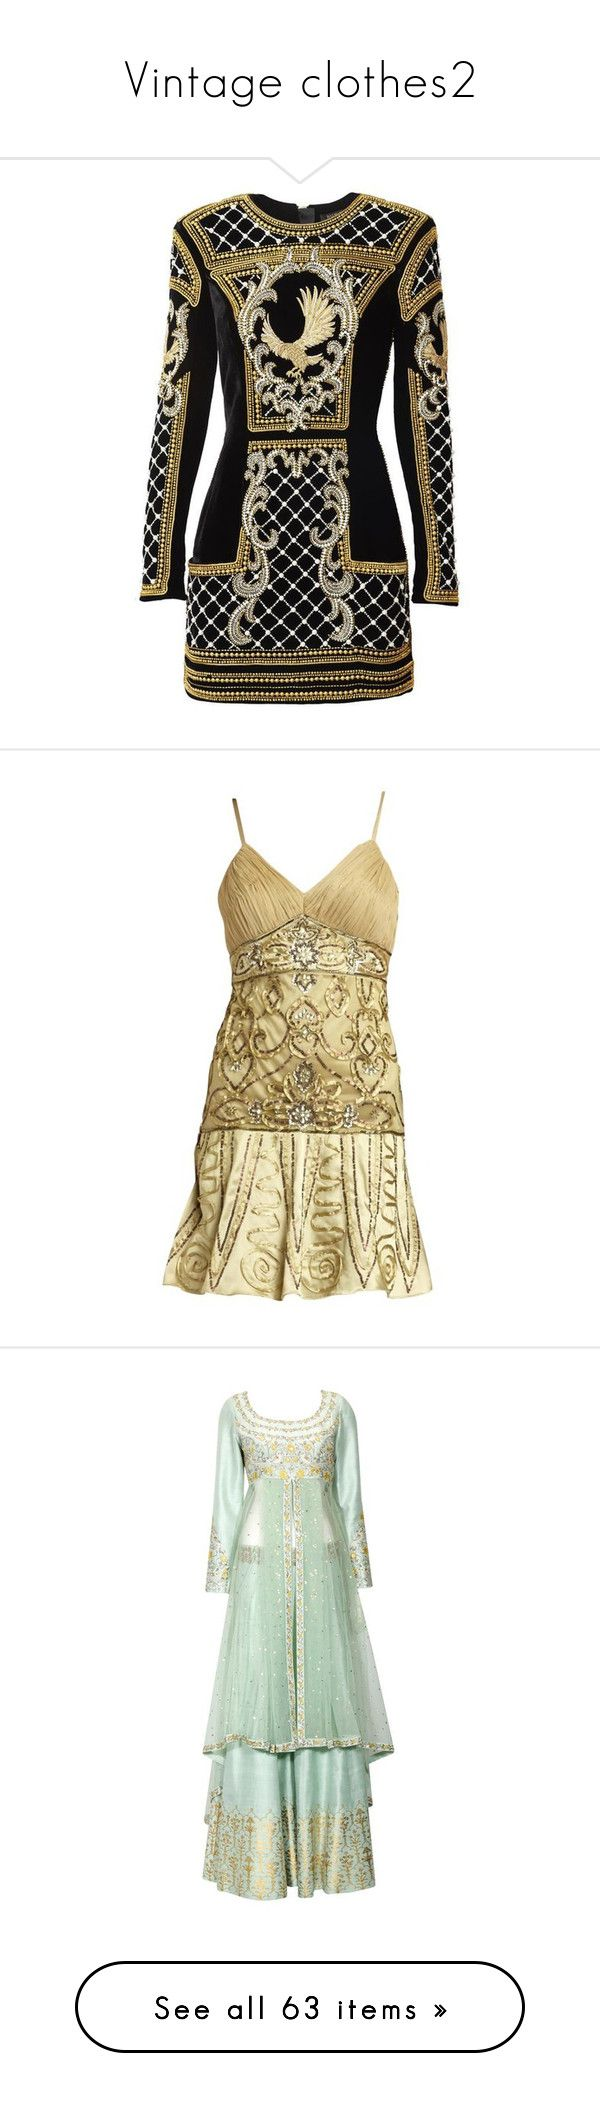 Vintage clothes2 by pusja76 on Polyvore featuring polyvore women's fashion clothing dresses olive beige dress beige sequin dress embroidered dress embellished cocktail dress flower dress white print white silk dress paisley print dress paisley day dress white print dress paisley pattern dress gowns short dress платья white dress short white dresses white mini dress mini dress short dresses bags handbags clutches real leather handbags real leather purses jimmy choo clutches brown purse…